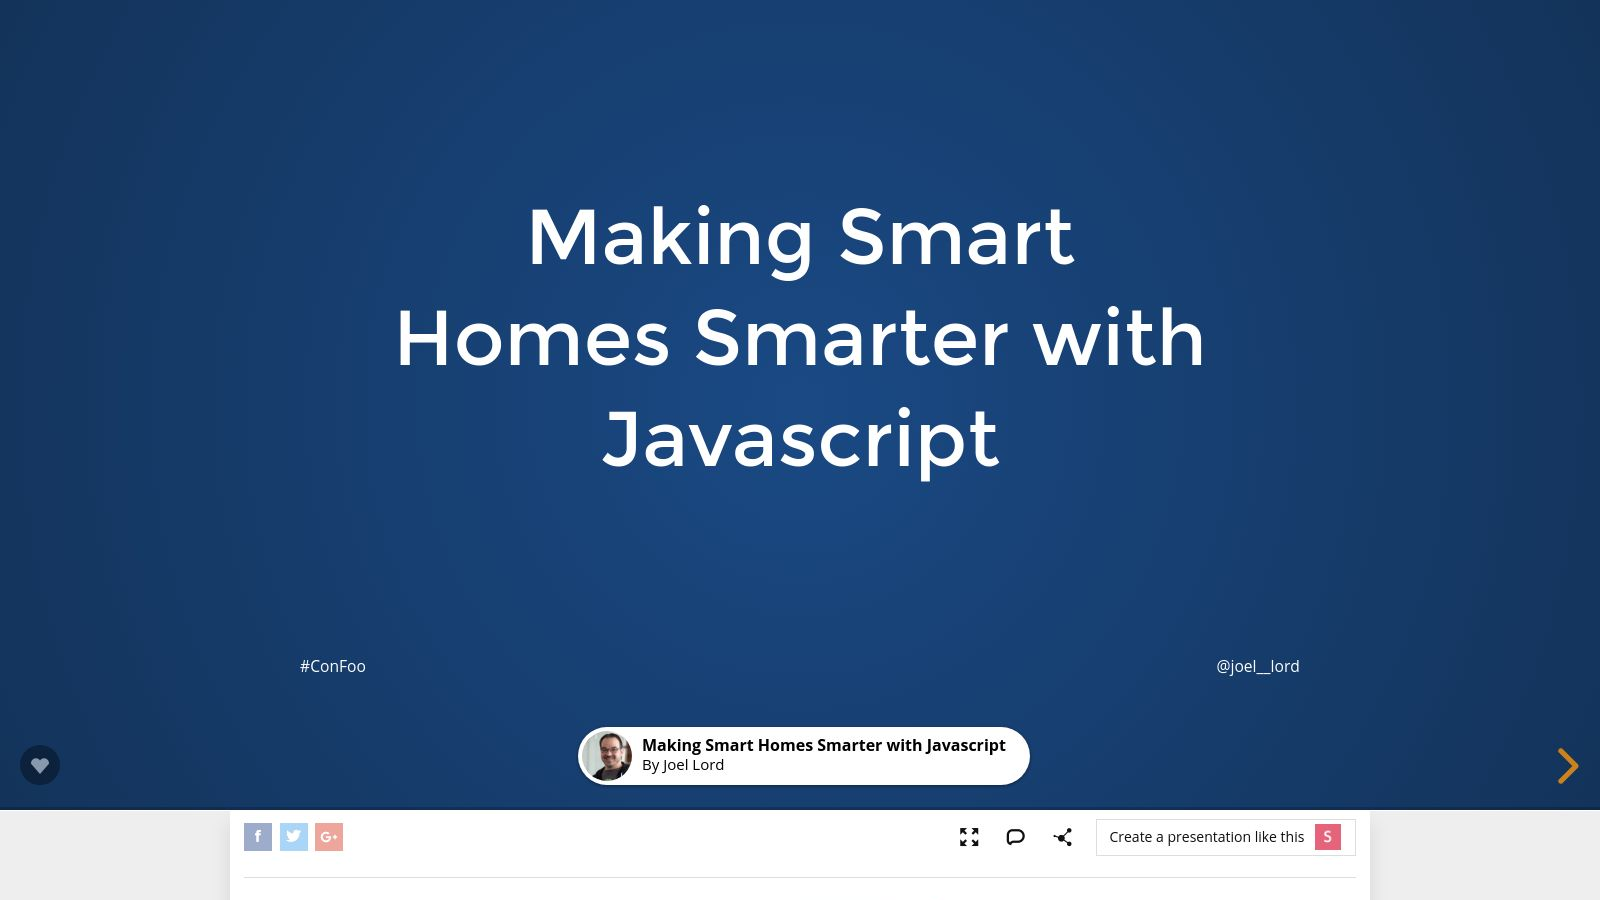 Smart homes made smarter with Javascript